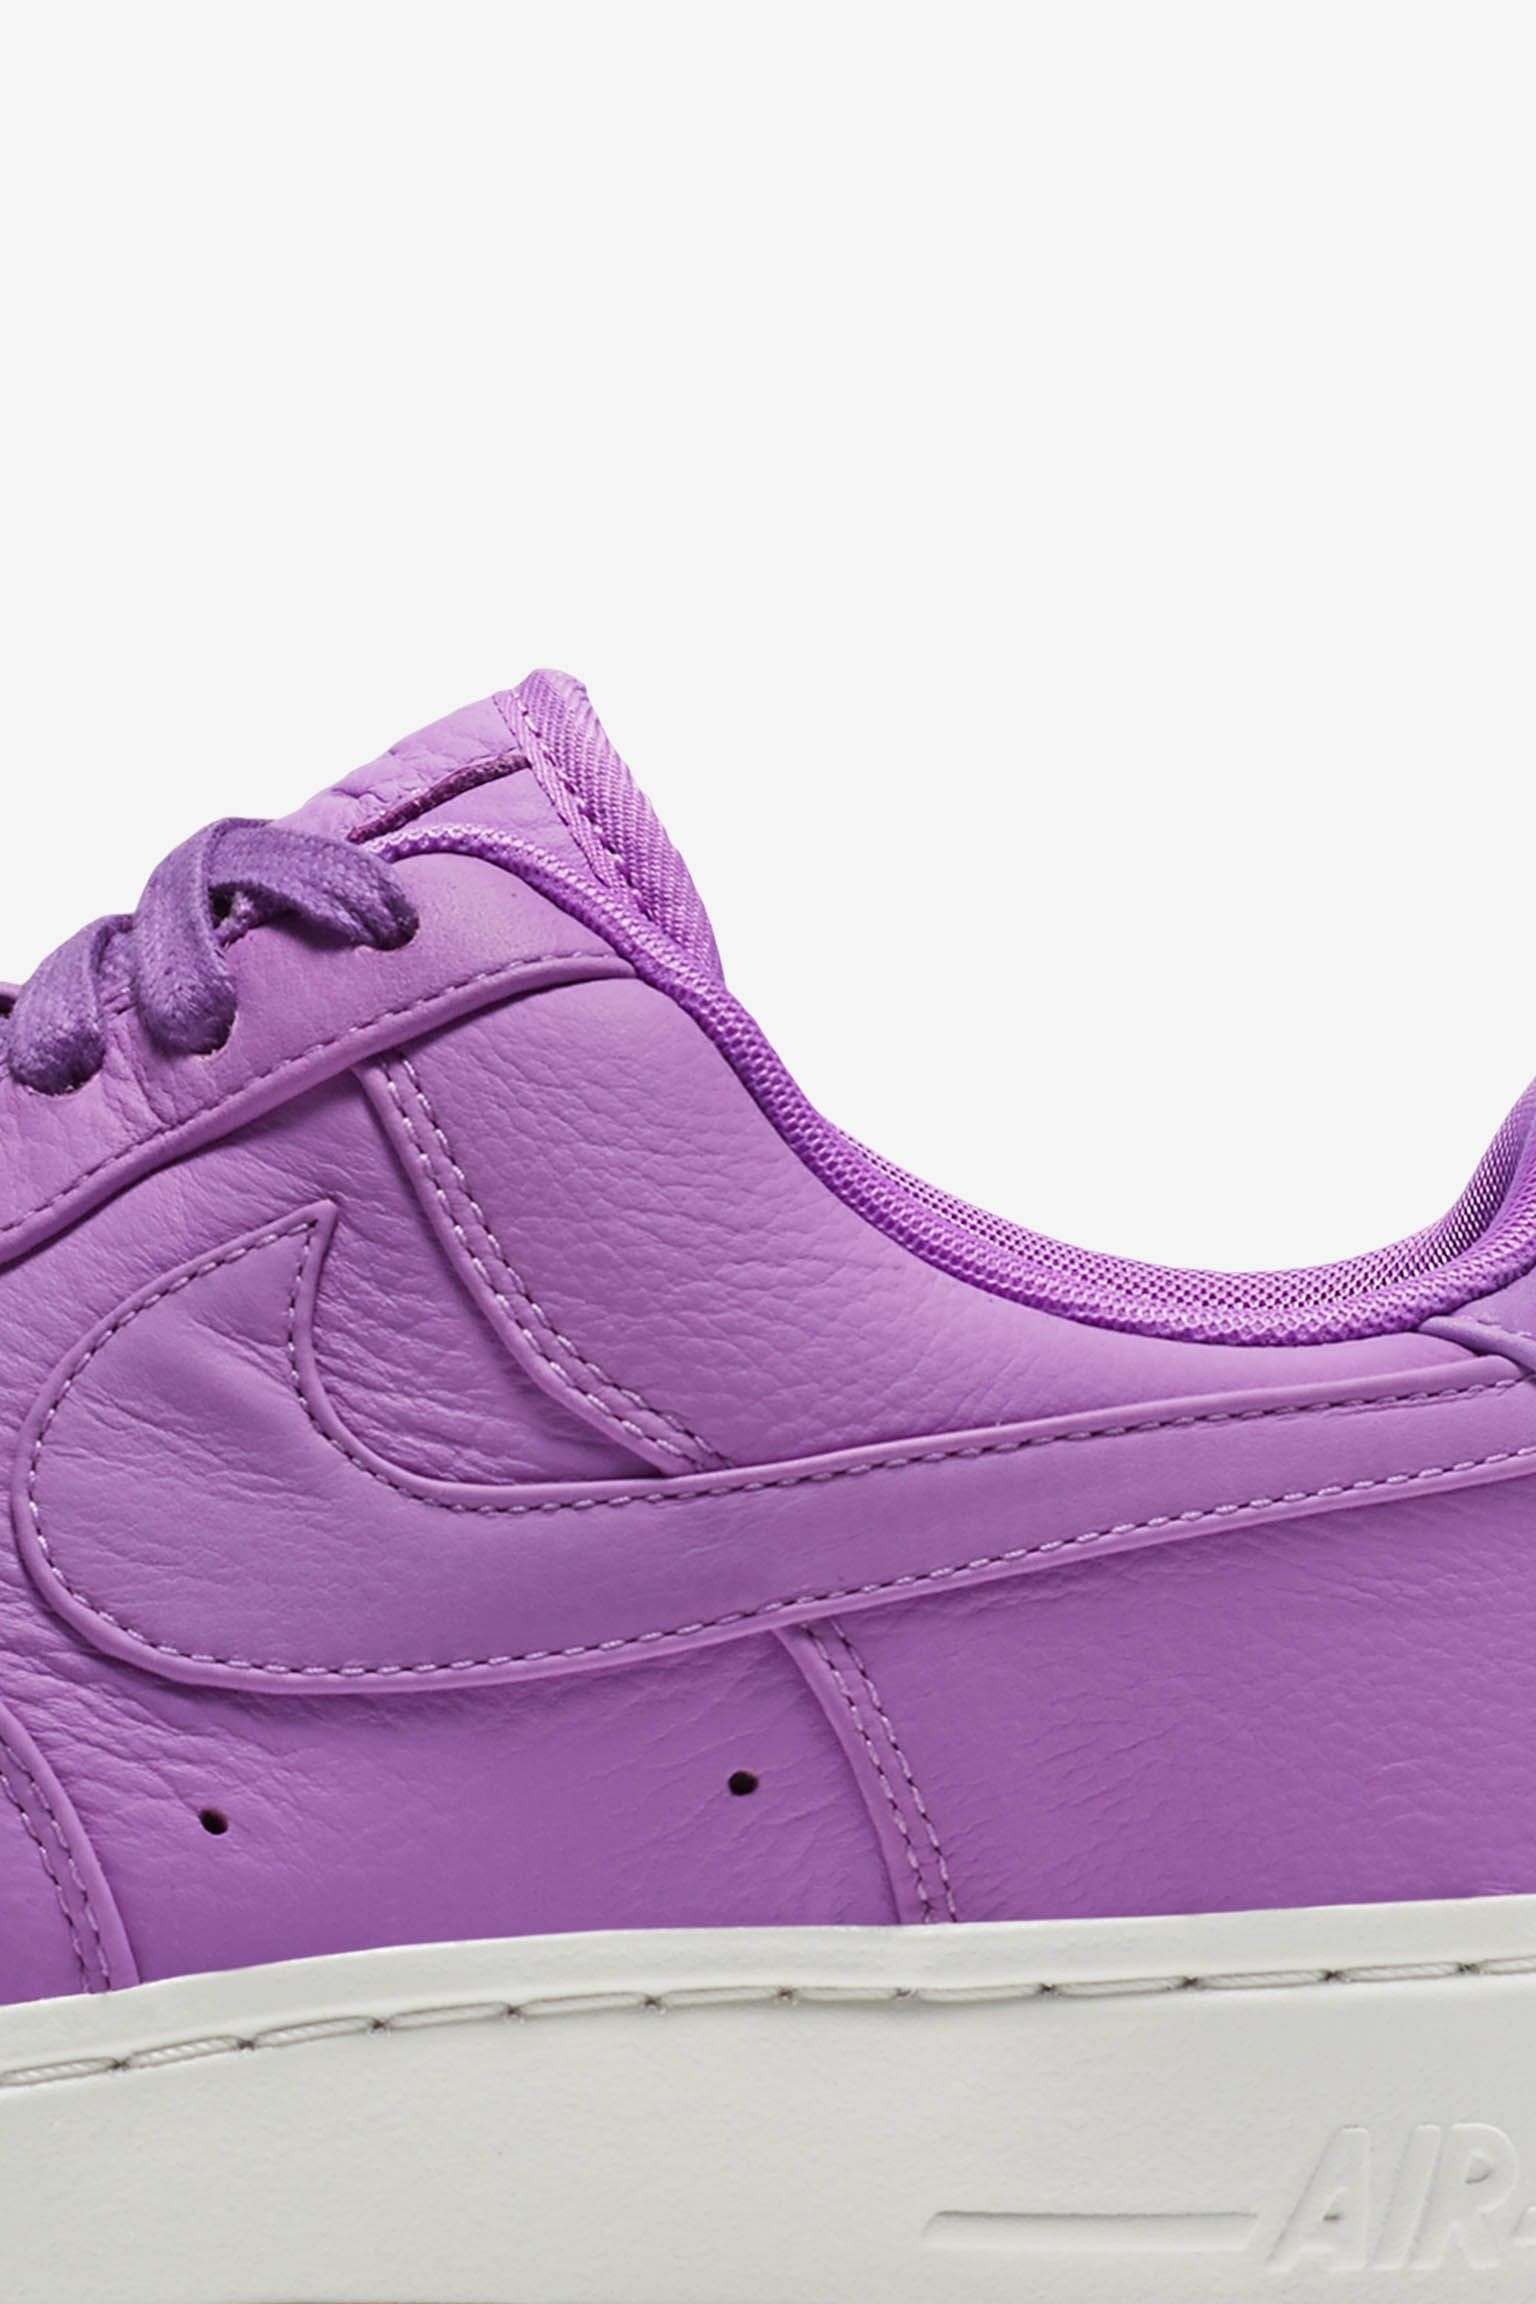 NikeLab Air Force 1 Low 'Purple Stardust'